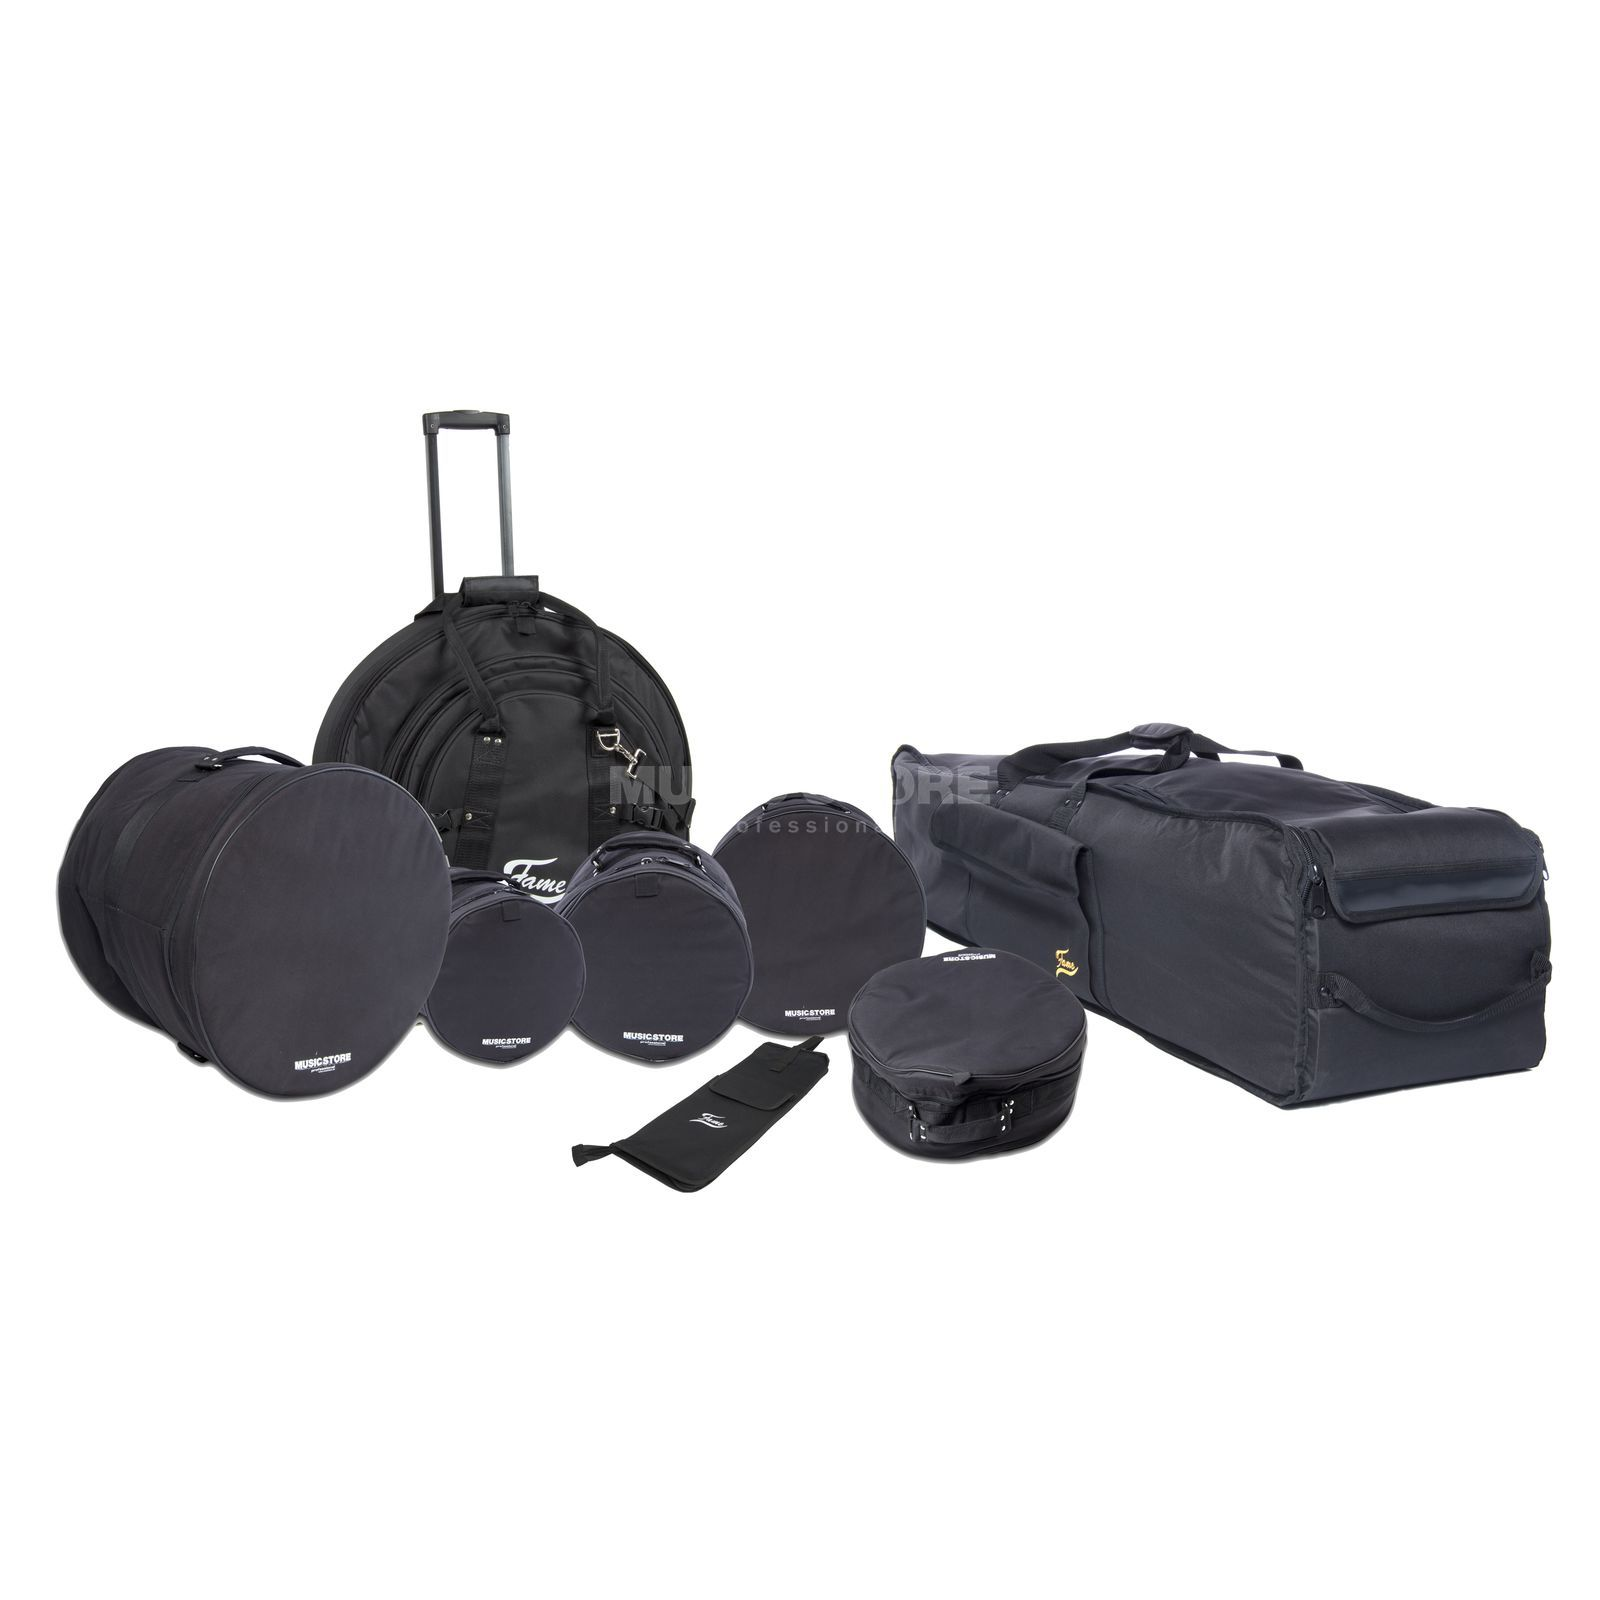 XXL Studio Bag - Set Produktbillede